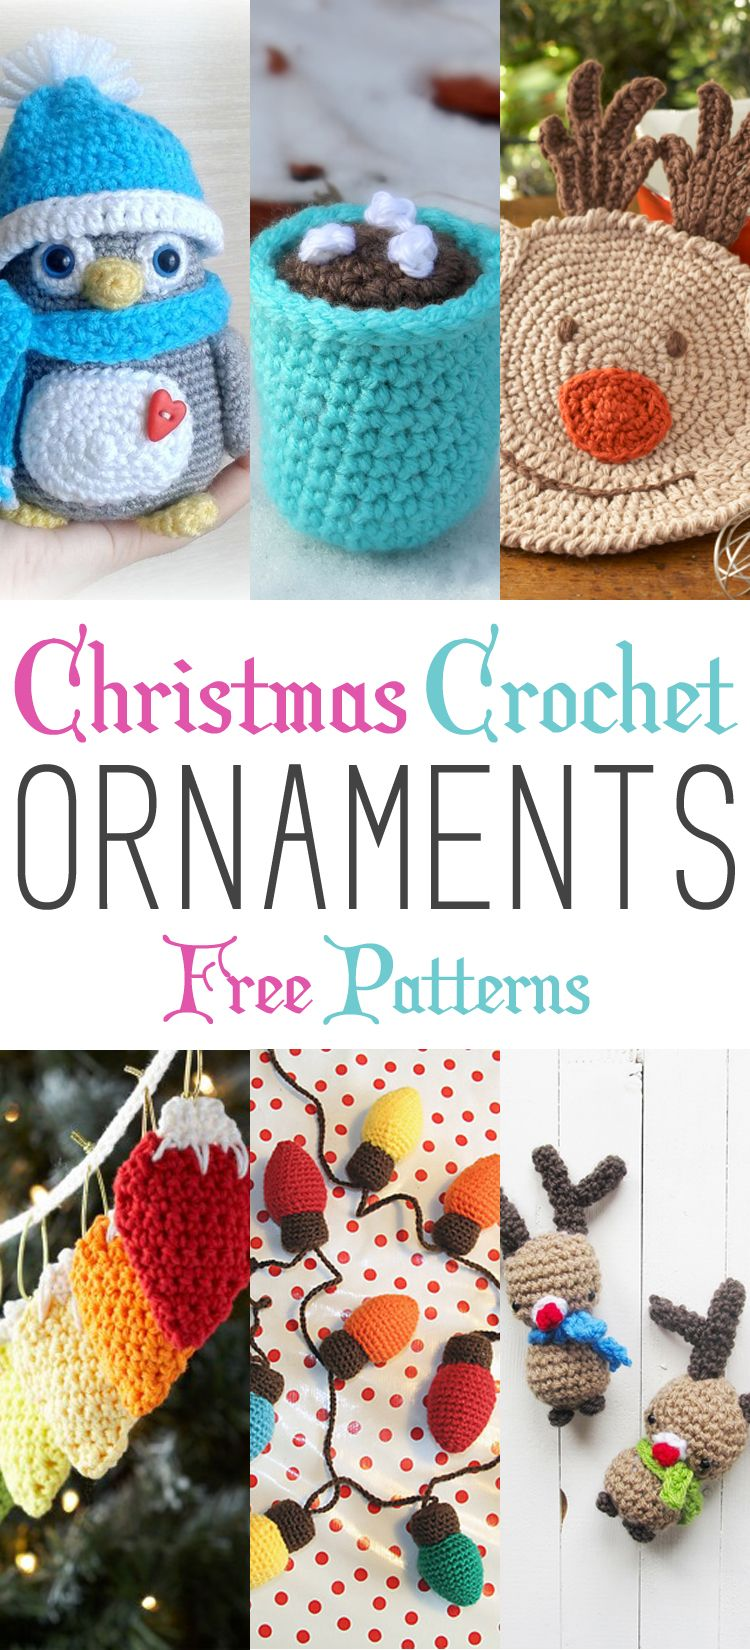 Christmas crochet ornaments with free patterns free pattern christmas crochet ornaments with free patterns bankloansurffo Image collections